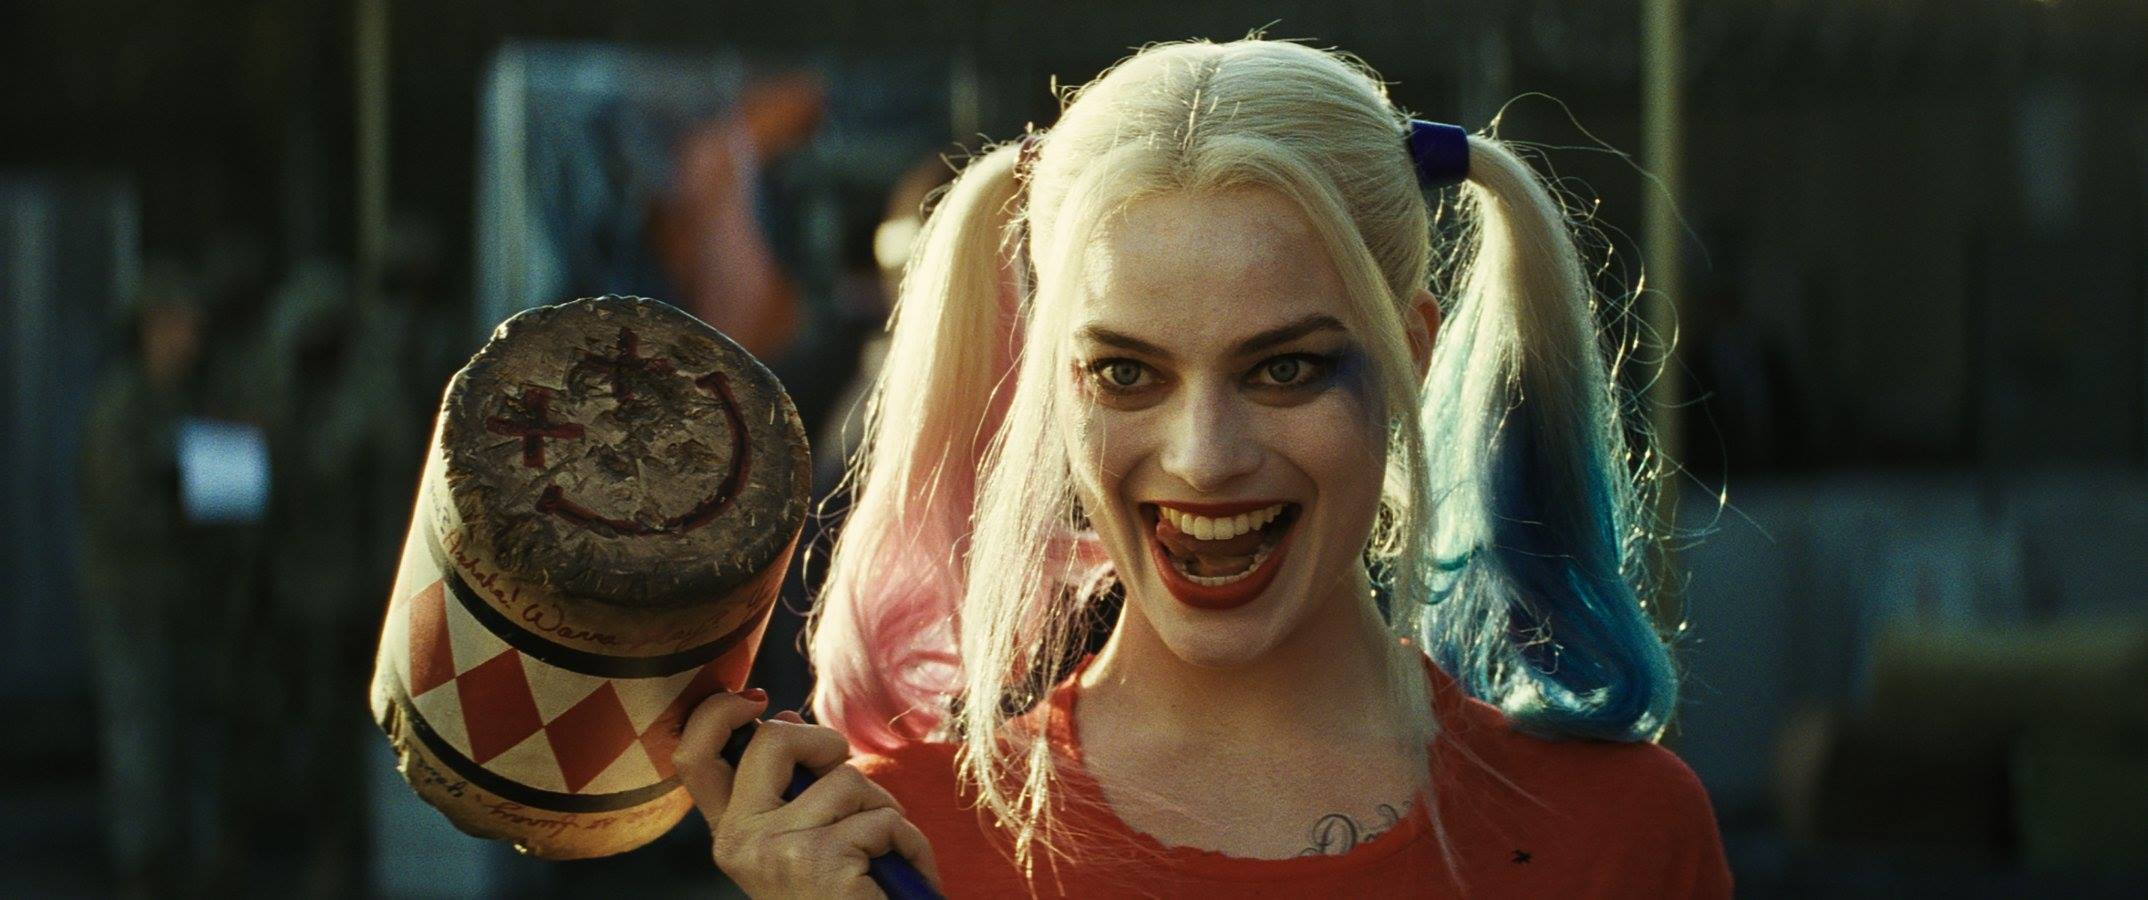 Suicide Squad 2, Gotham City Sirens, Birds Of Prey